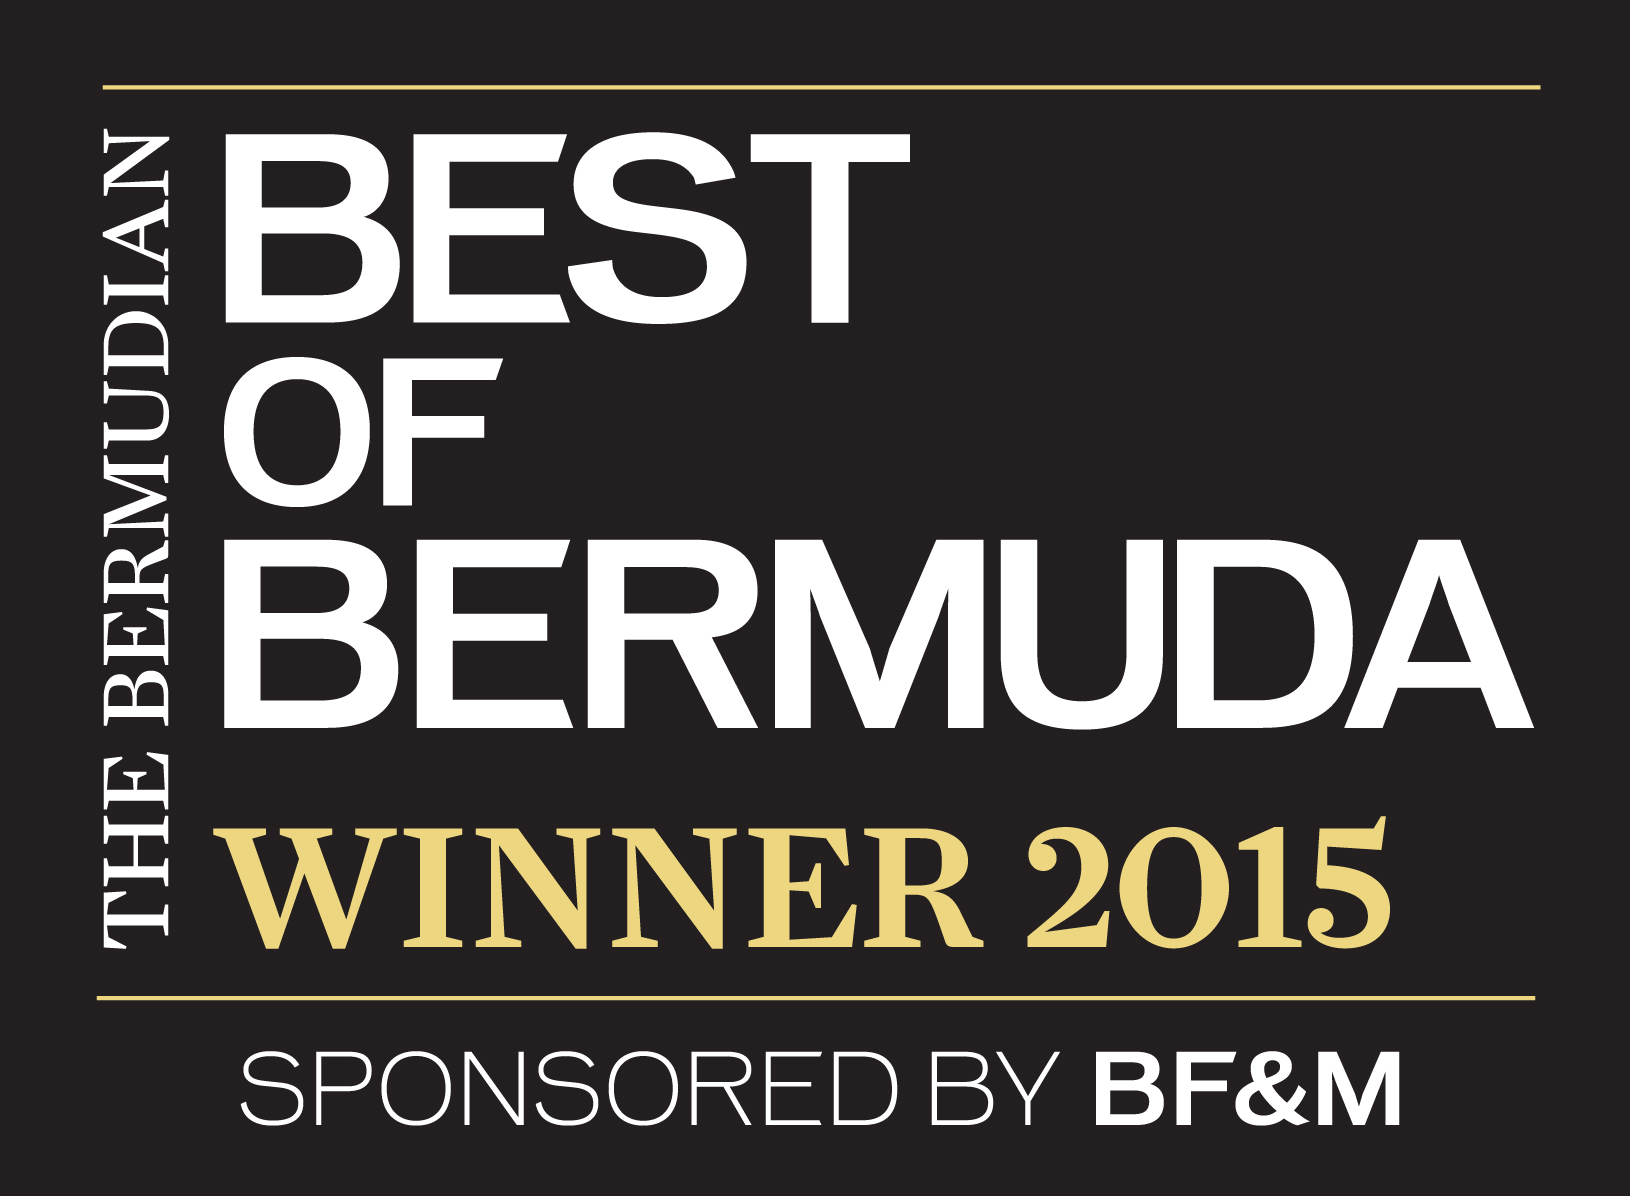 Best of Bermuda 2015 winner for Best Gas Station